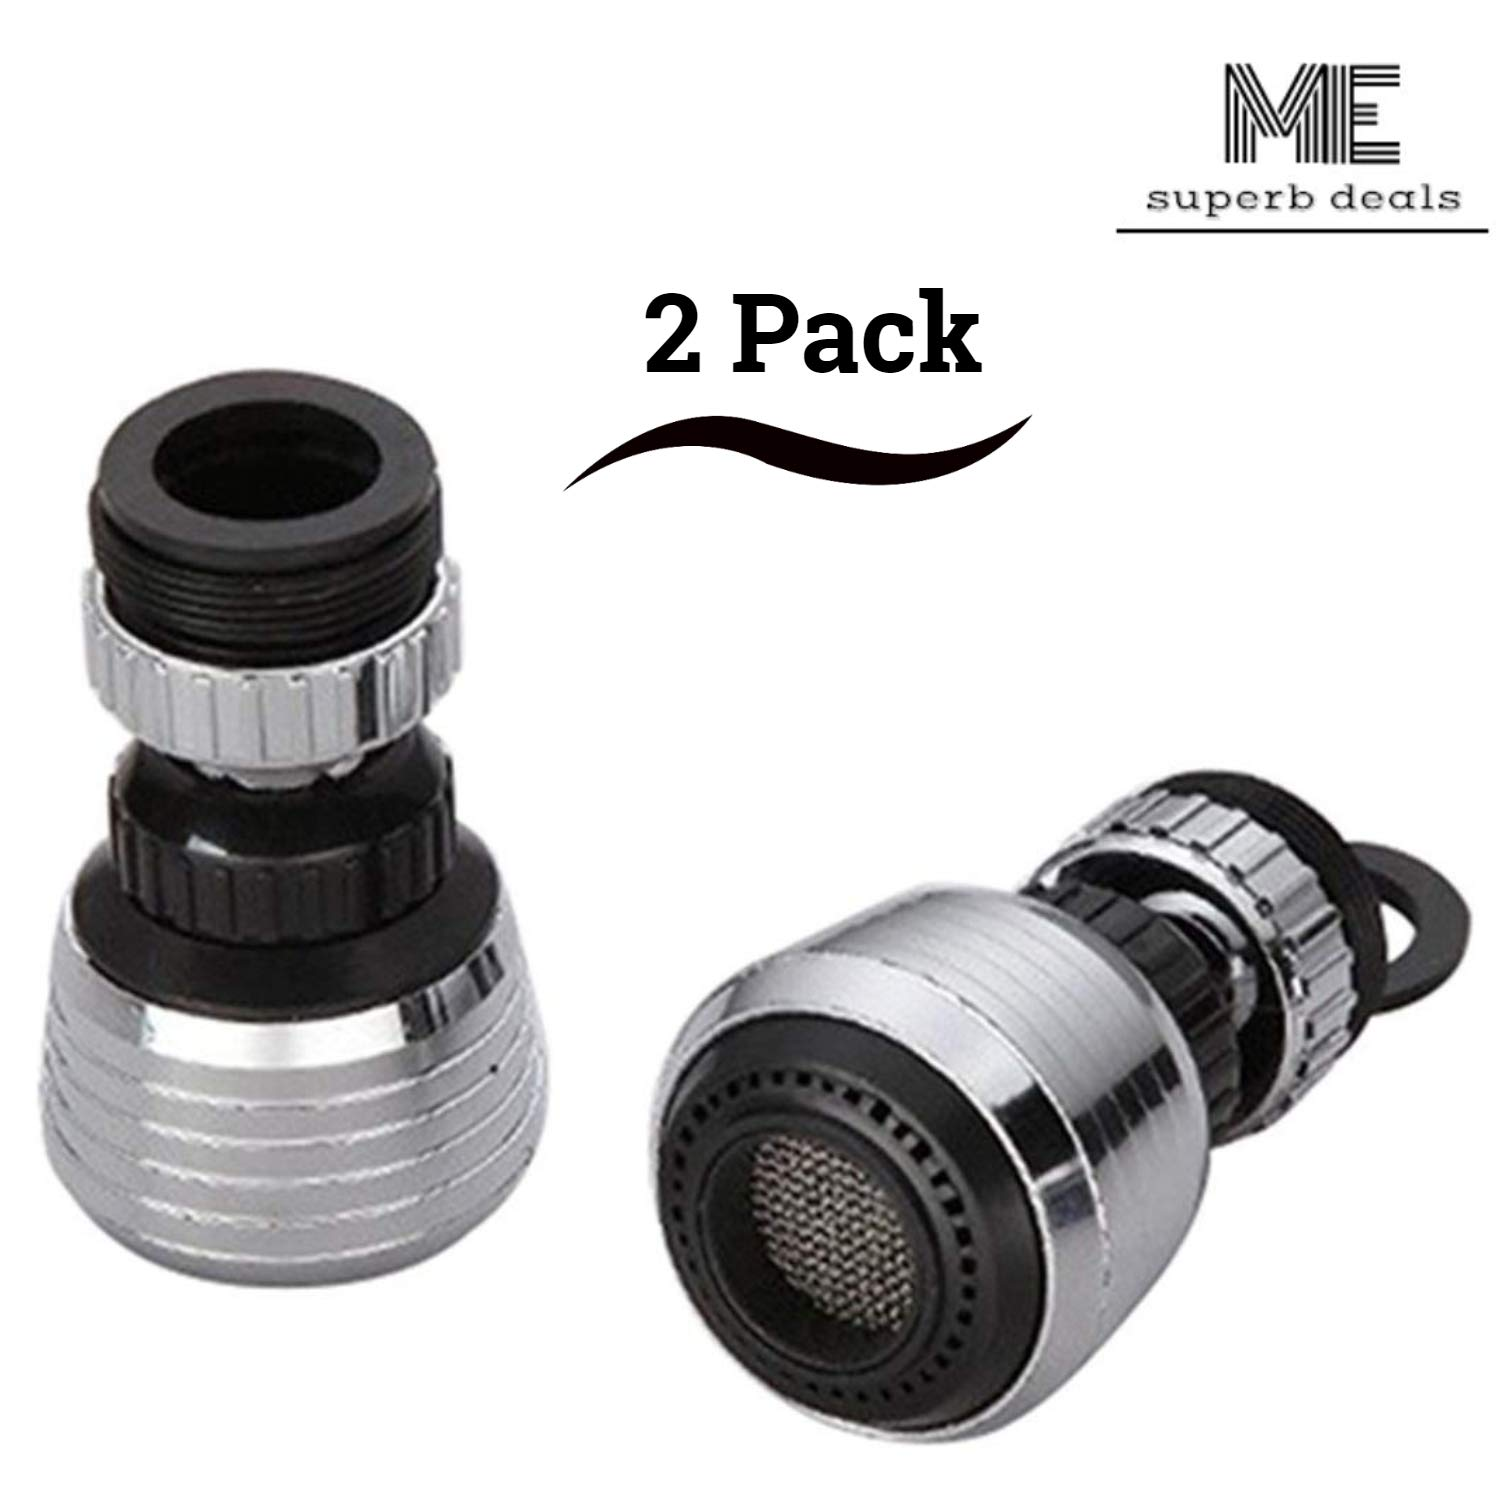 2 Pack ME Superb Deals Home /& Hotel Kitchen Water Saver Tap 360 Rotate Swivel Faucet Nozzle Filter Adapter for Restaurant